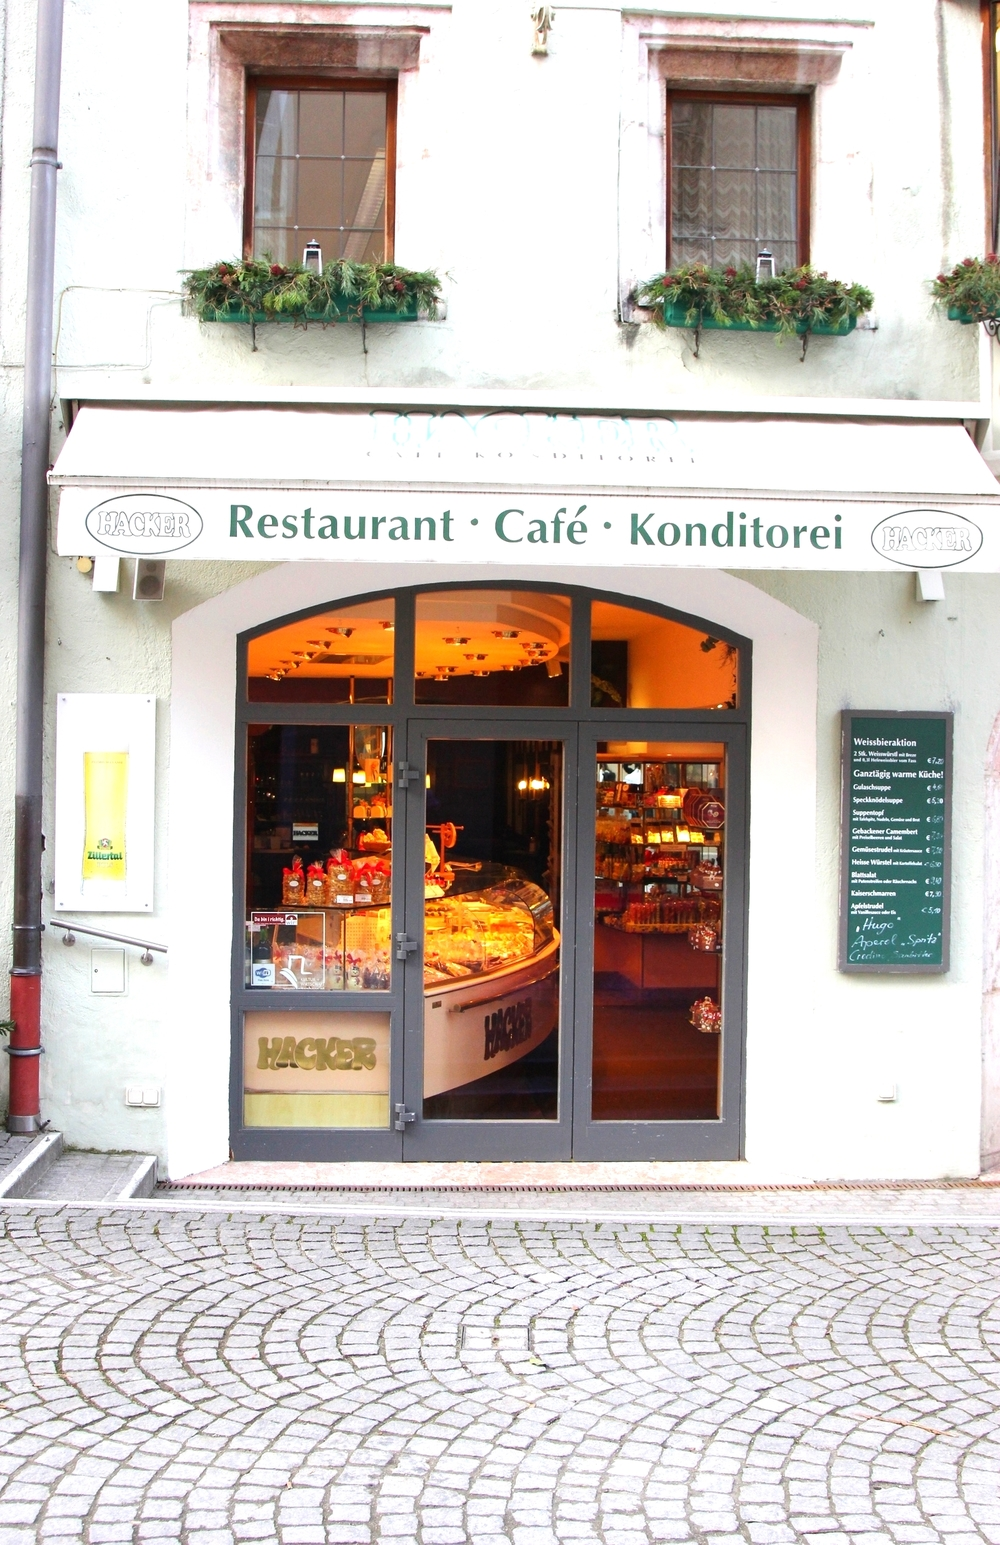 LaurenSchwaiger-Travel-Blog-Rattenberg-Cafe-Konditorei-Hacker.jpg